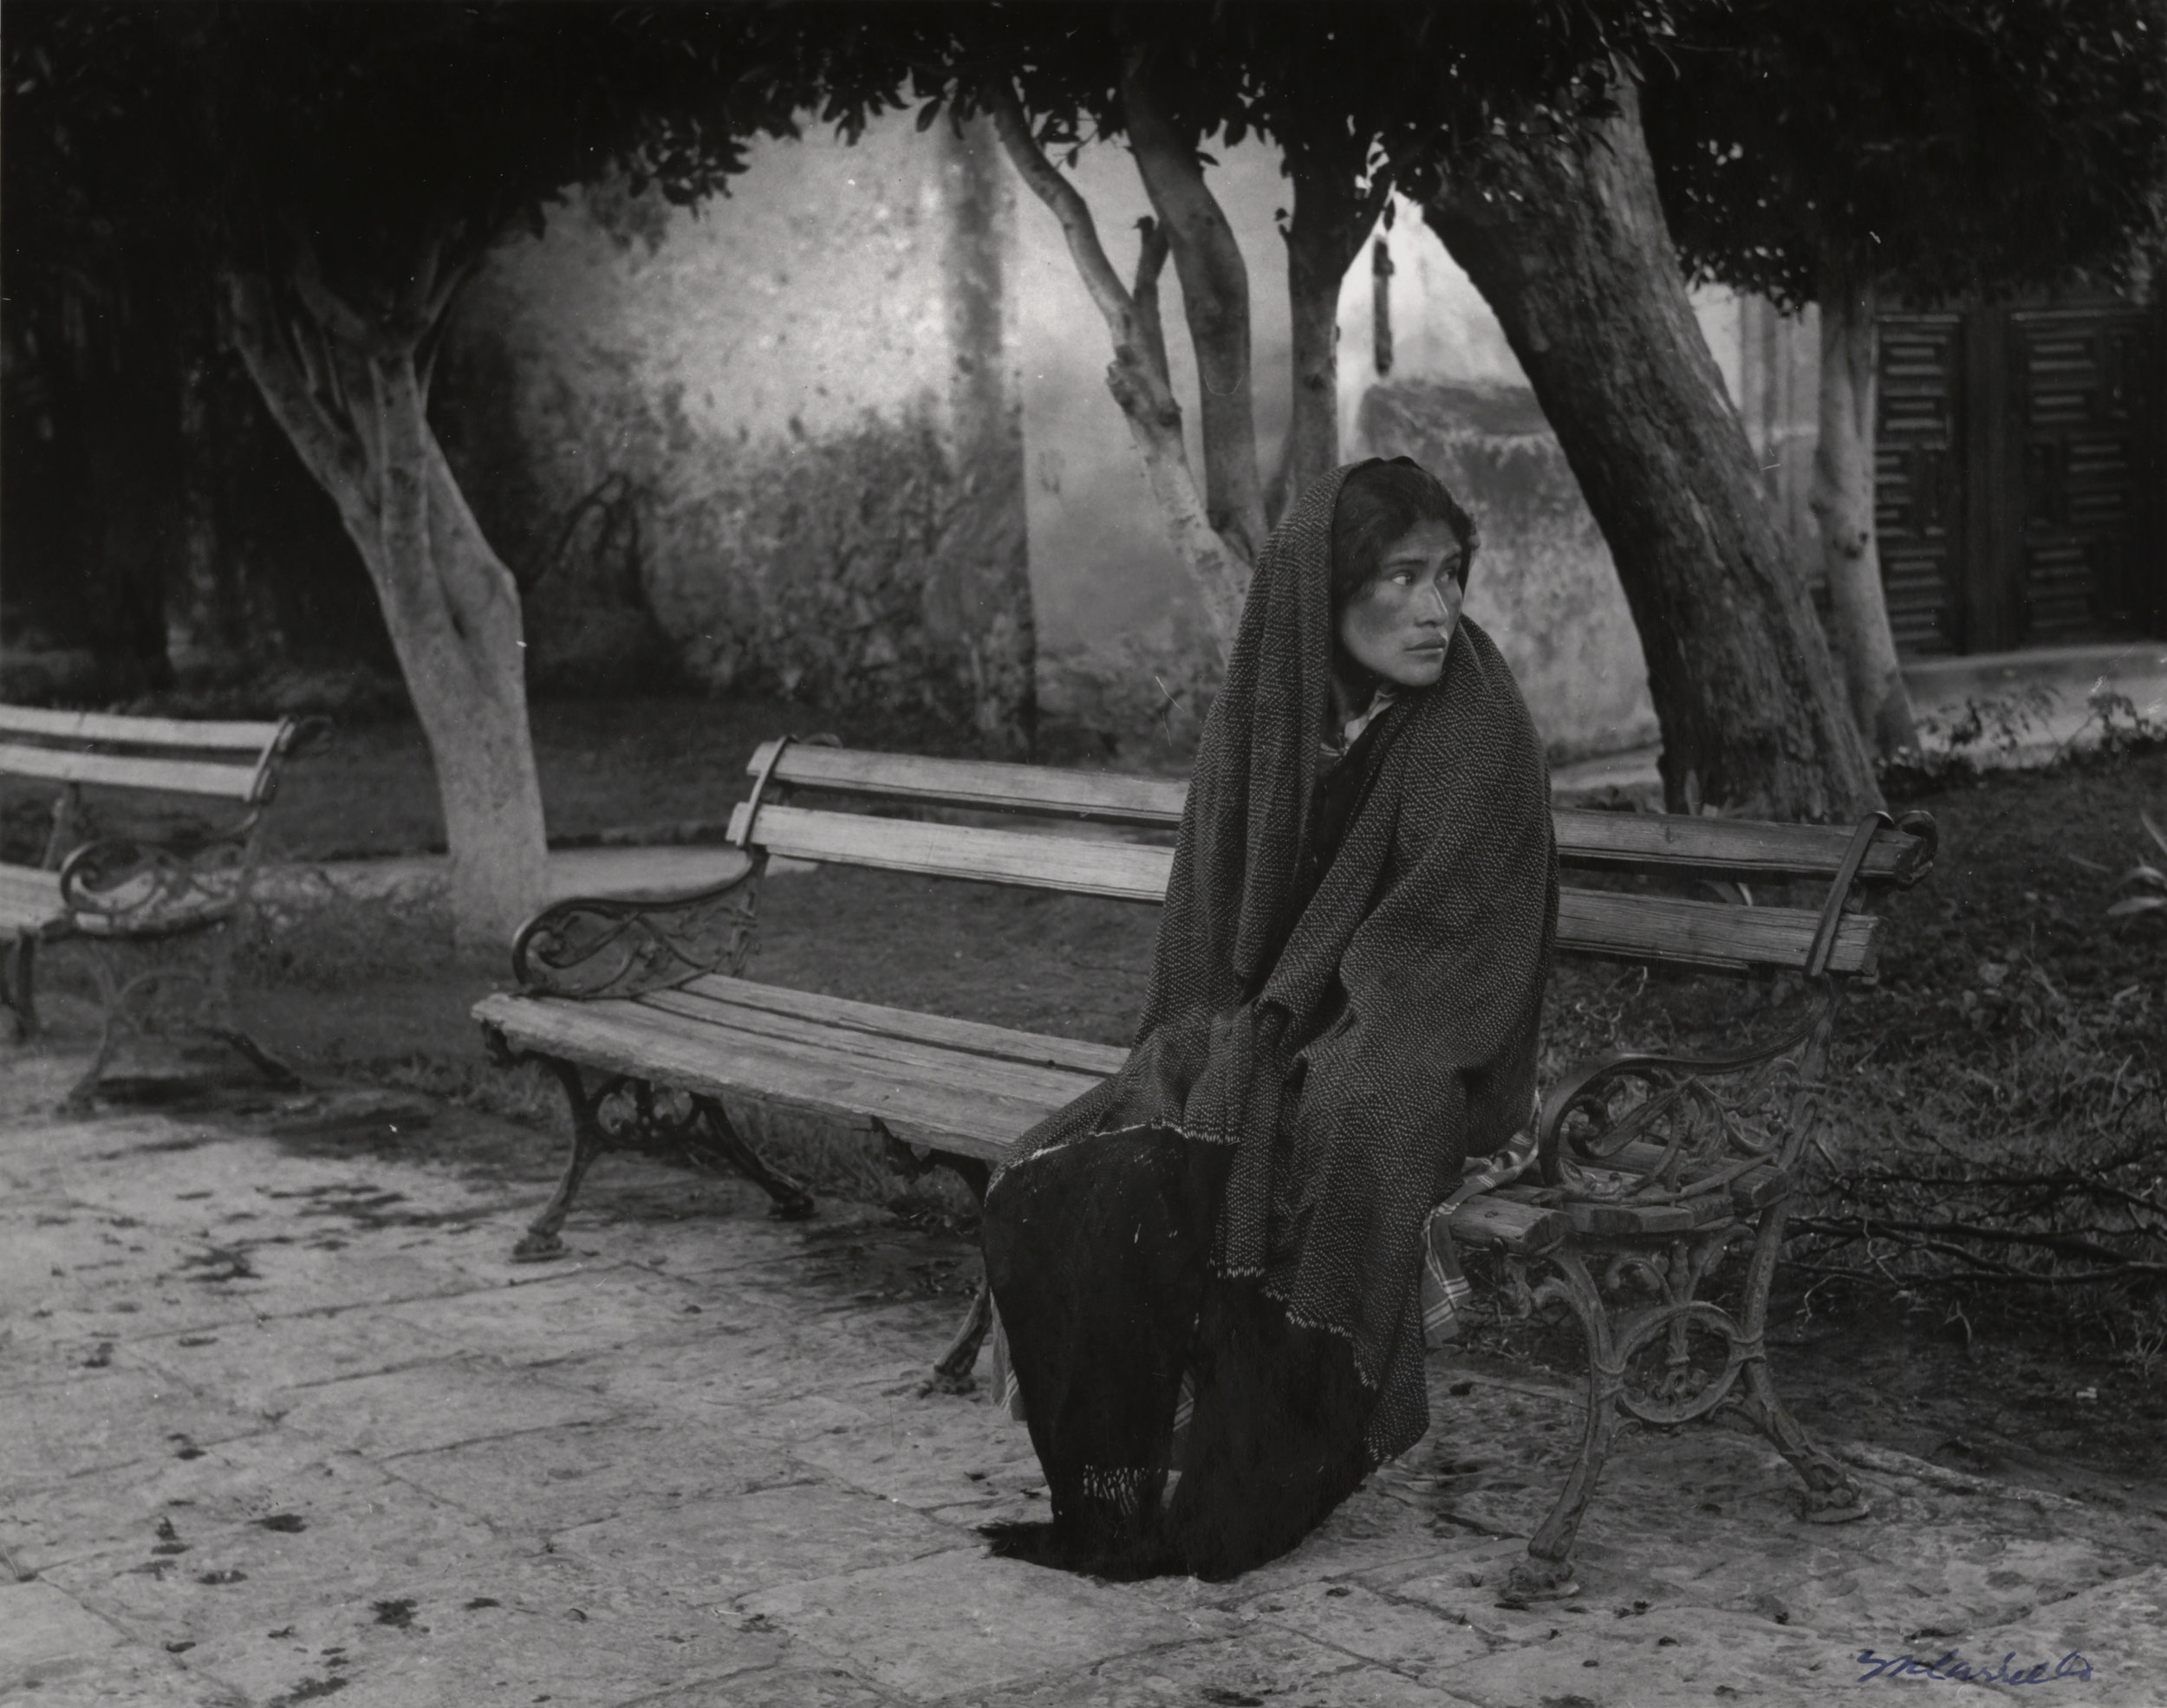 Woman Wearing Shawl Sitting on Park Bench  (San Miguel Allende, Guanajuato), 1970.Black & White photograph on paper. 8 x 10